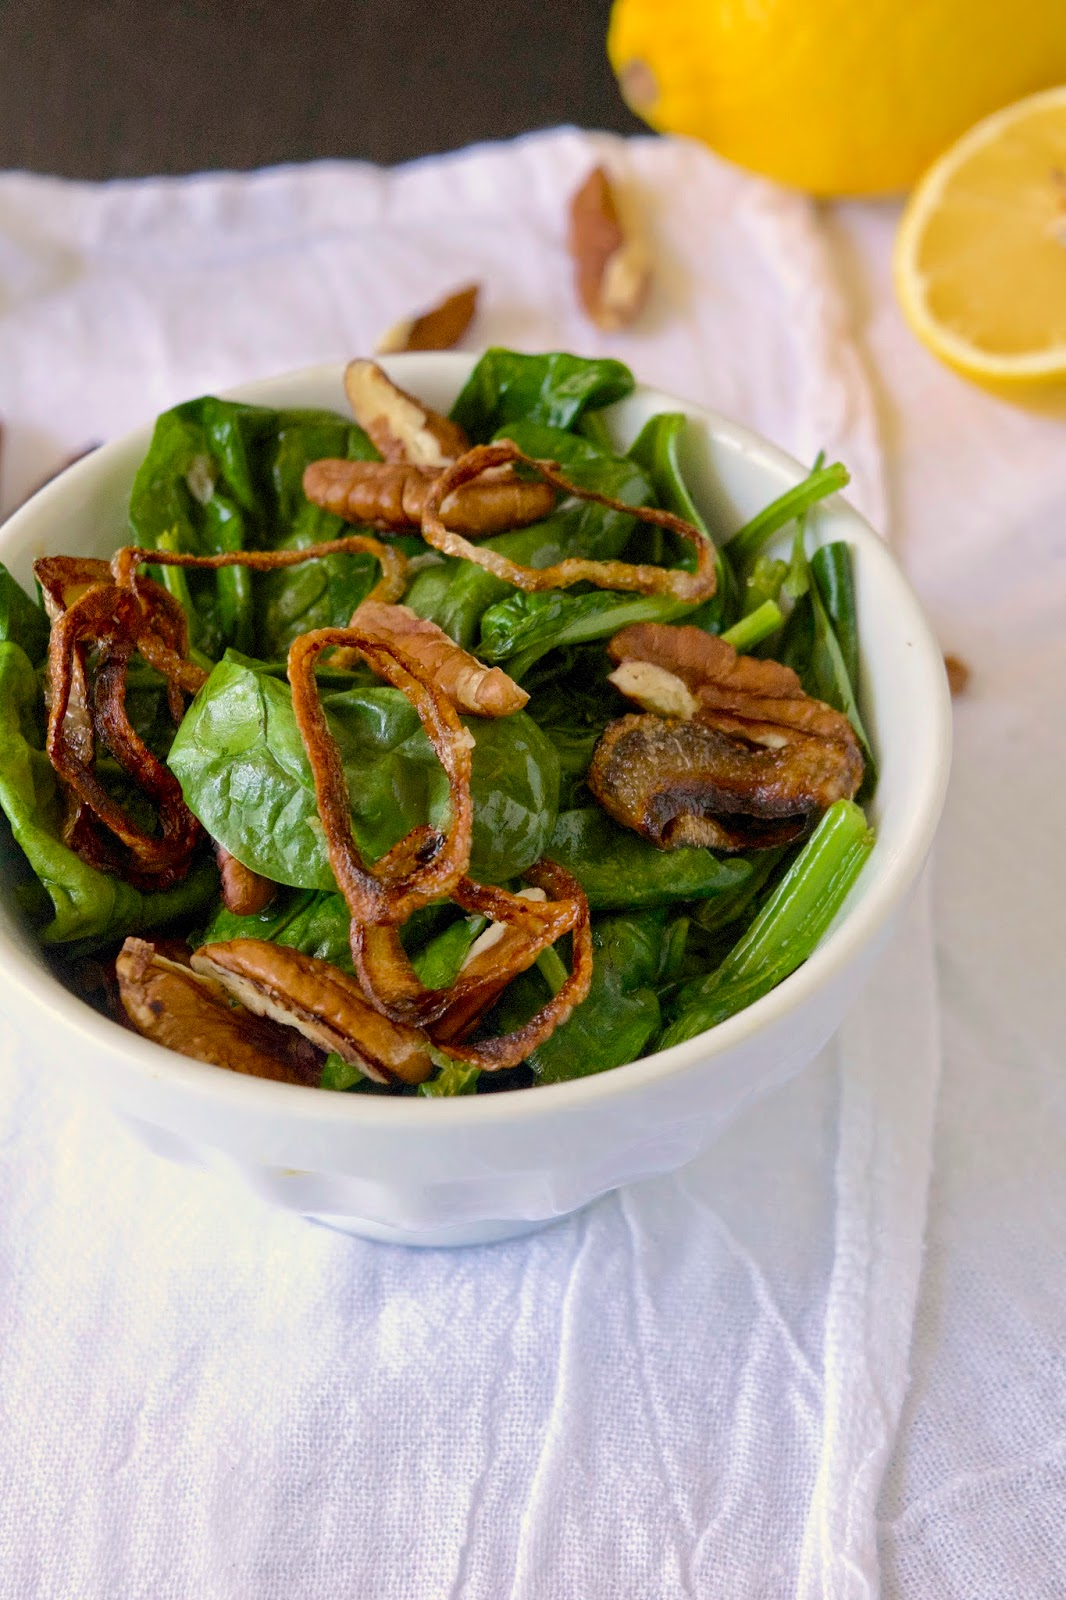 Sautéed spinach with crispy shallots and pecans